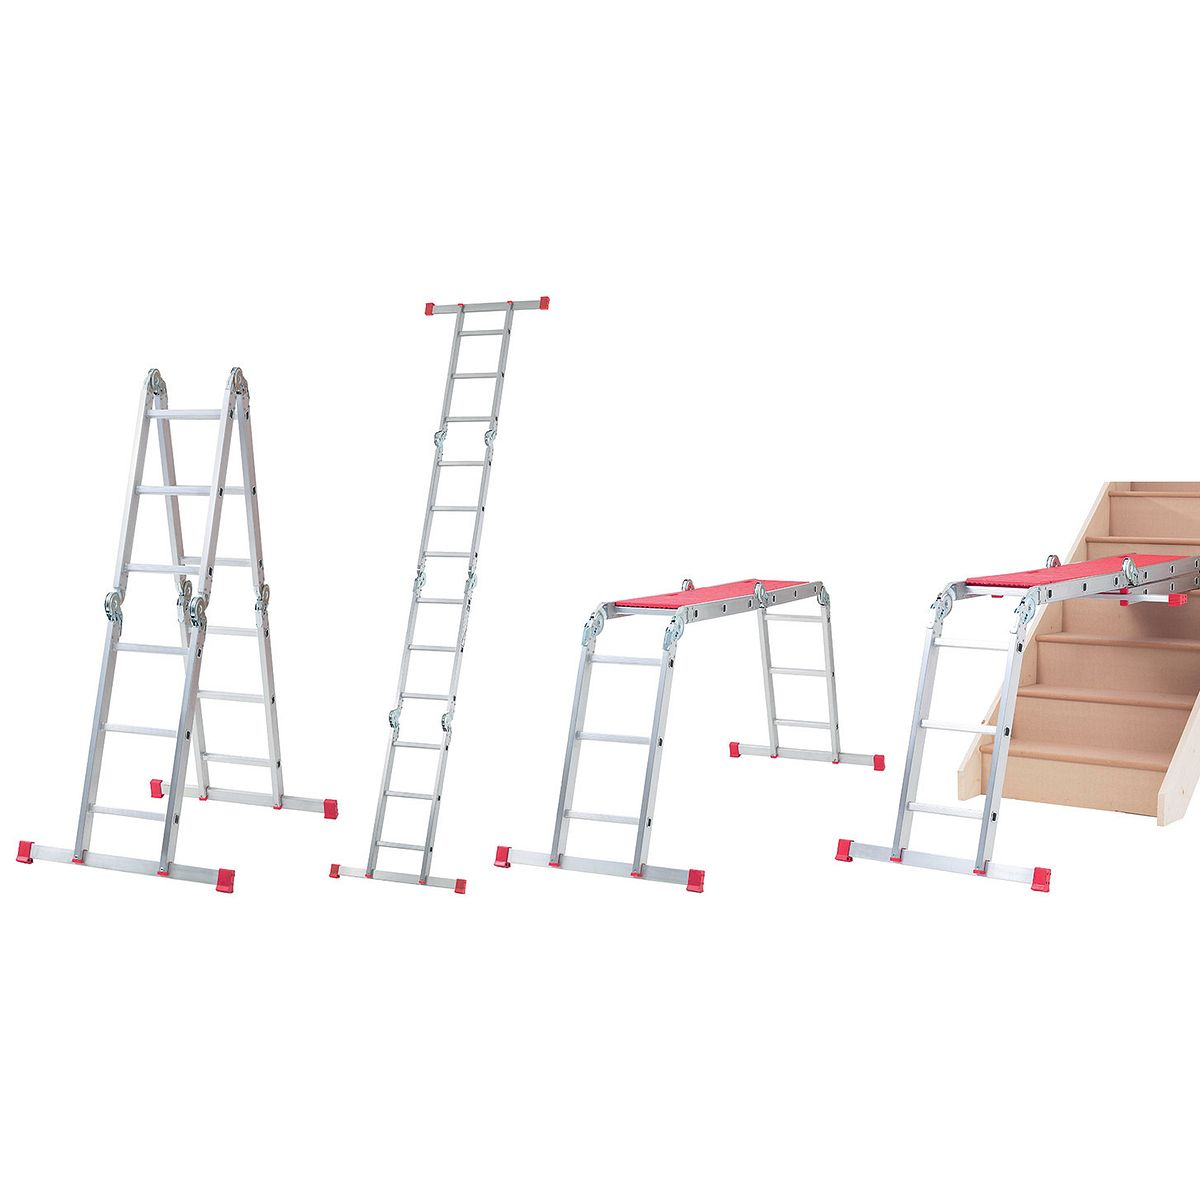 25044 Combination Ladders Abru Ladders And Rotary Dryers